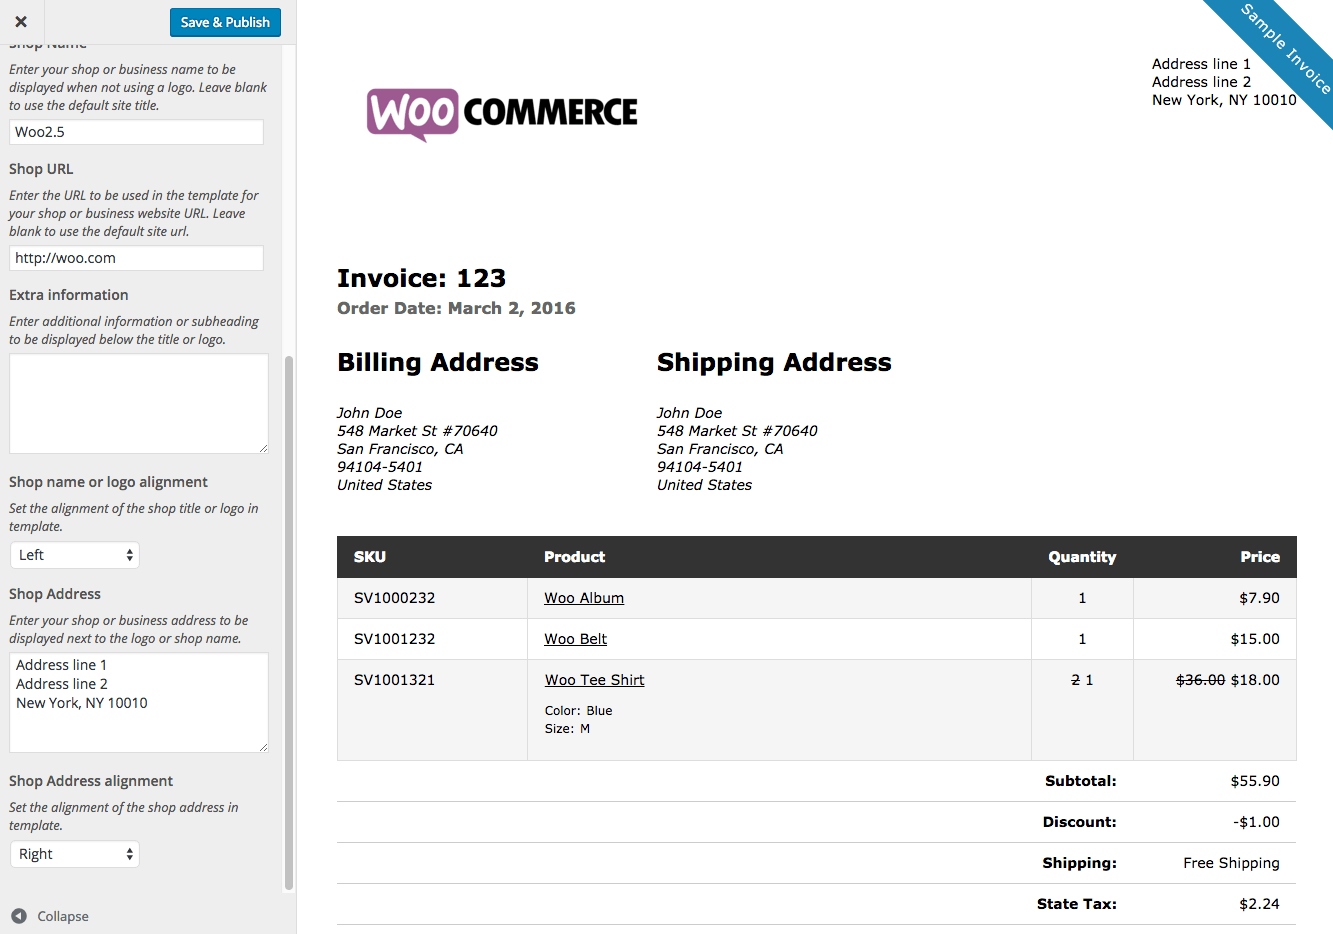 Opposenewapstandardsus  Scenic Woocommerce Print Invoices Amp Packing Lists  Woocommerce Docs With Magnificent Woocommerce Print Invoices  Packing Lists Customizer With Nice How To Pronounce Receipt Also Business Receipt Books In Addition Should I Keep Receipts And Register Receipt Advertising As Well As Cash Register Receipts Additionally Generate Receipt From Docswoocommercecom With Opposenewapstandardsus  Magnificent Woocommerce Print Invoices Amp Packing Lists  Woocommerce Docs With Nice Woocommerce Print Invoices  Packing Lists Customizer And Scenic How To Pronounce Receipt Also Business Receipt Books In Addition Should I Keep Receipts From Docswoocommercecom